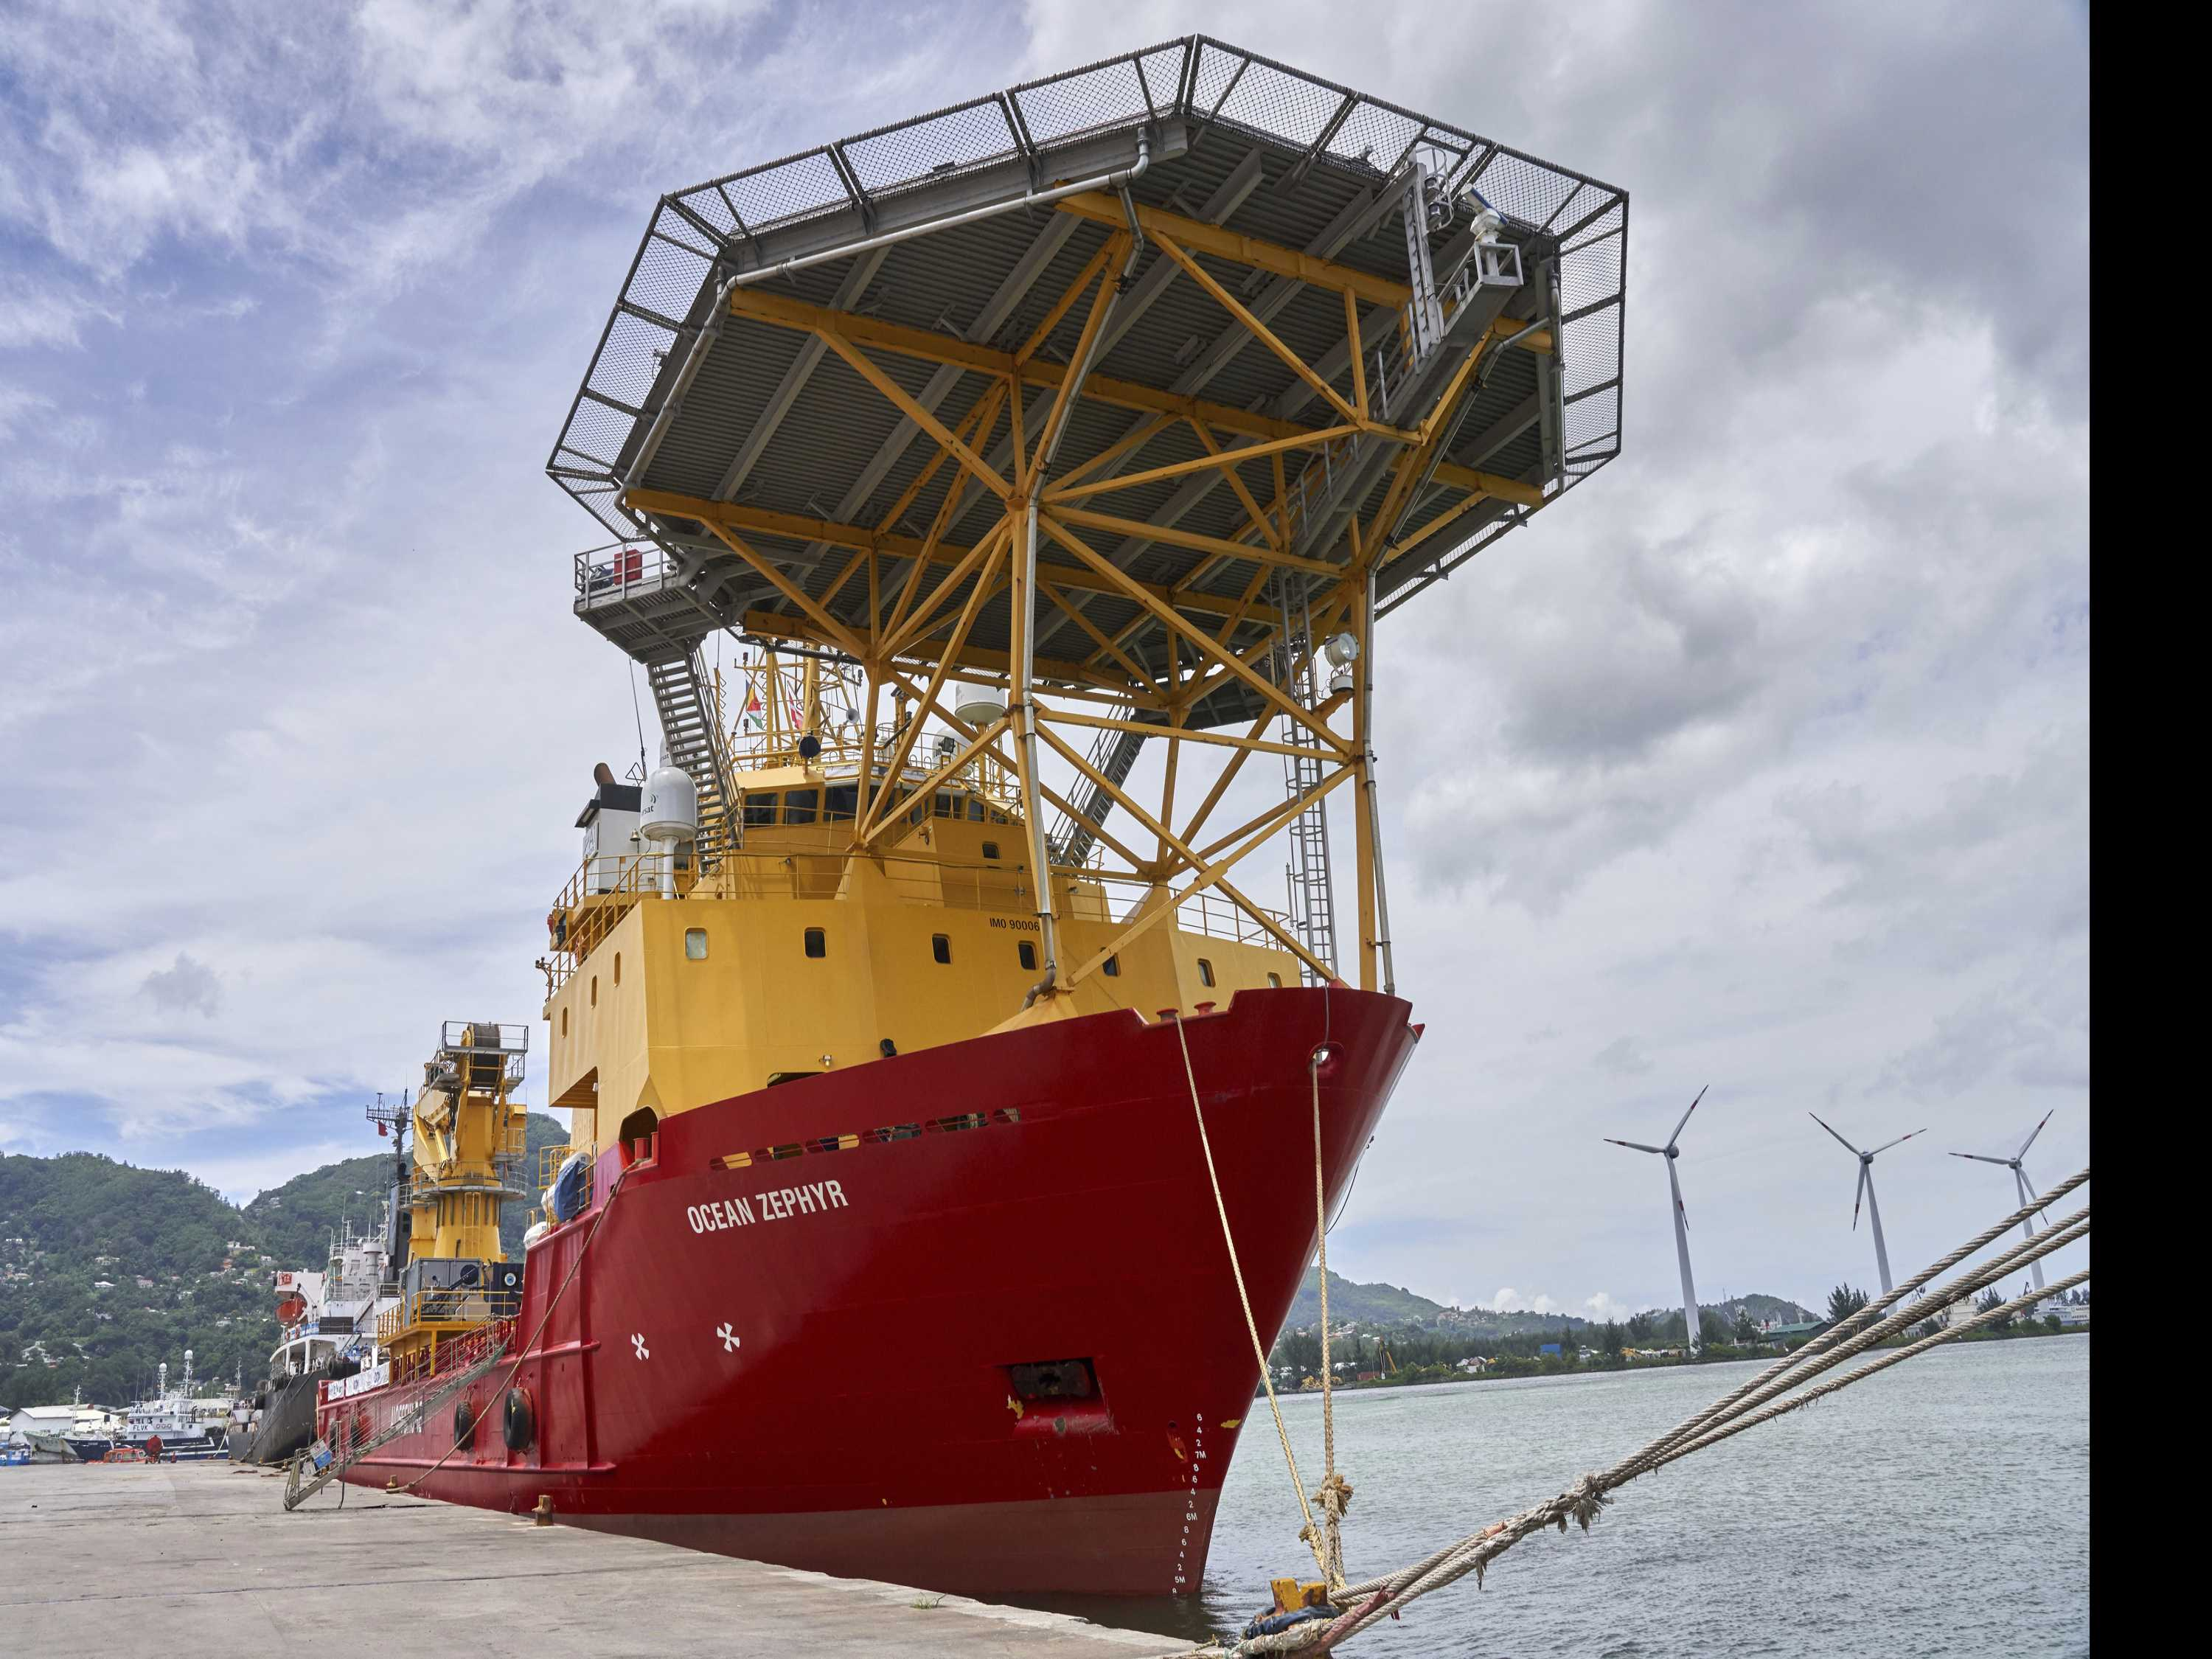 Science Vessel for Ocean Mission Arrives in Seychelles